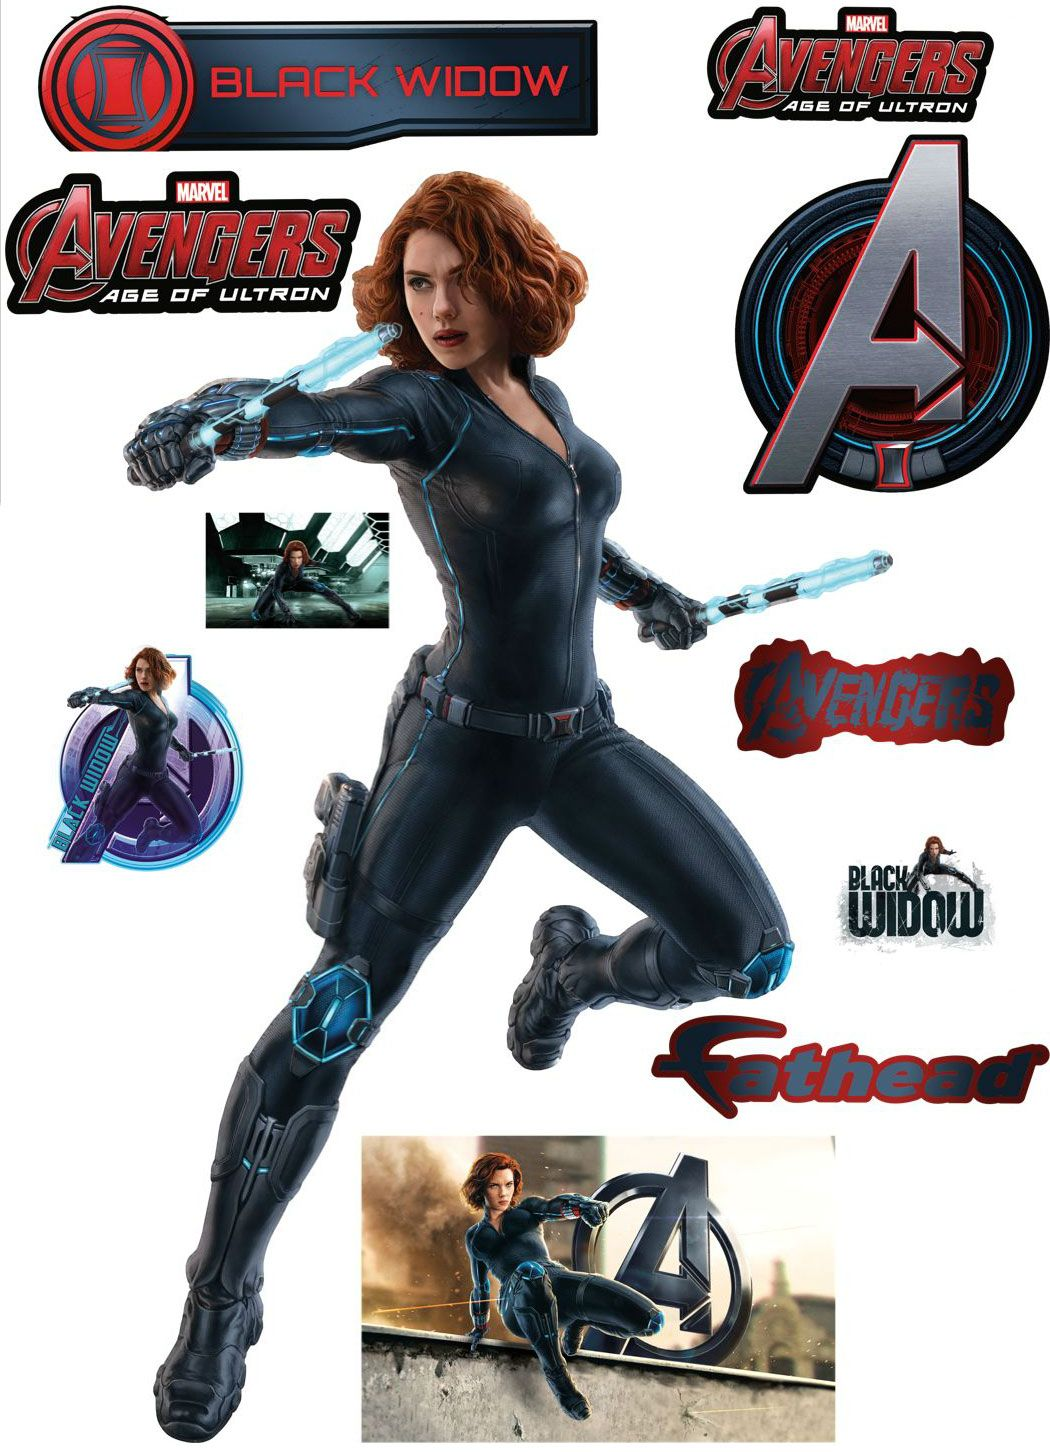 Avengers Age Of Ultron Fathead Wall Decals Featuring Ultron